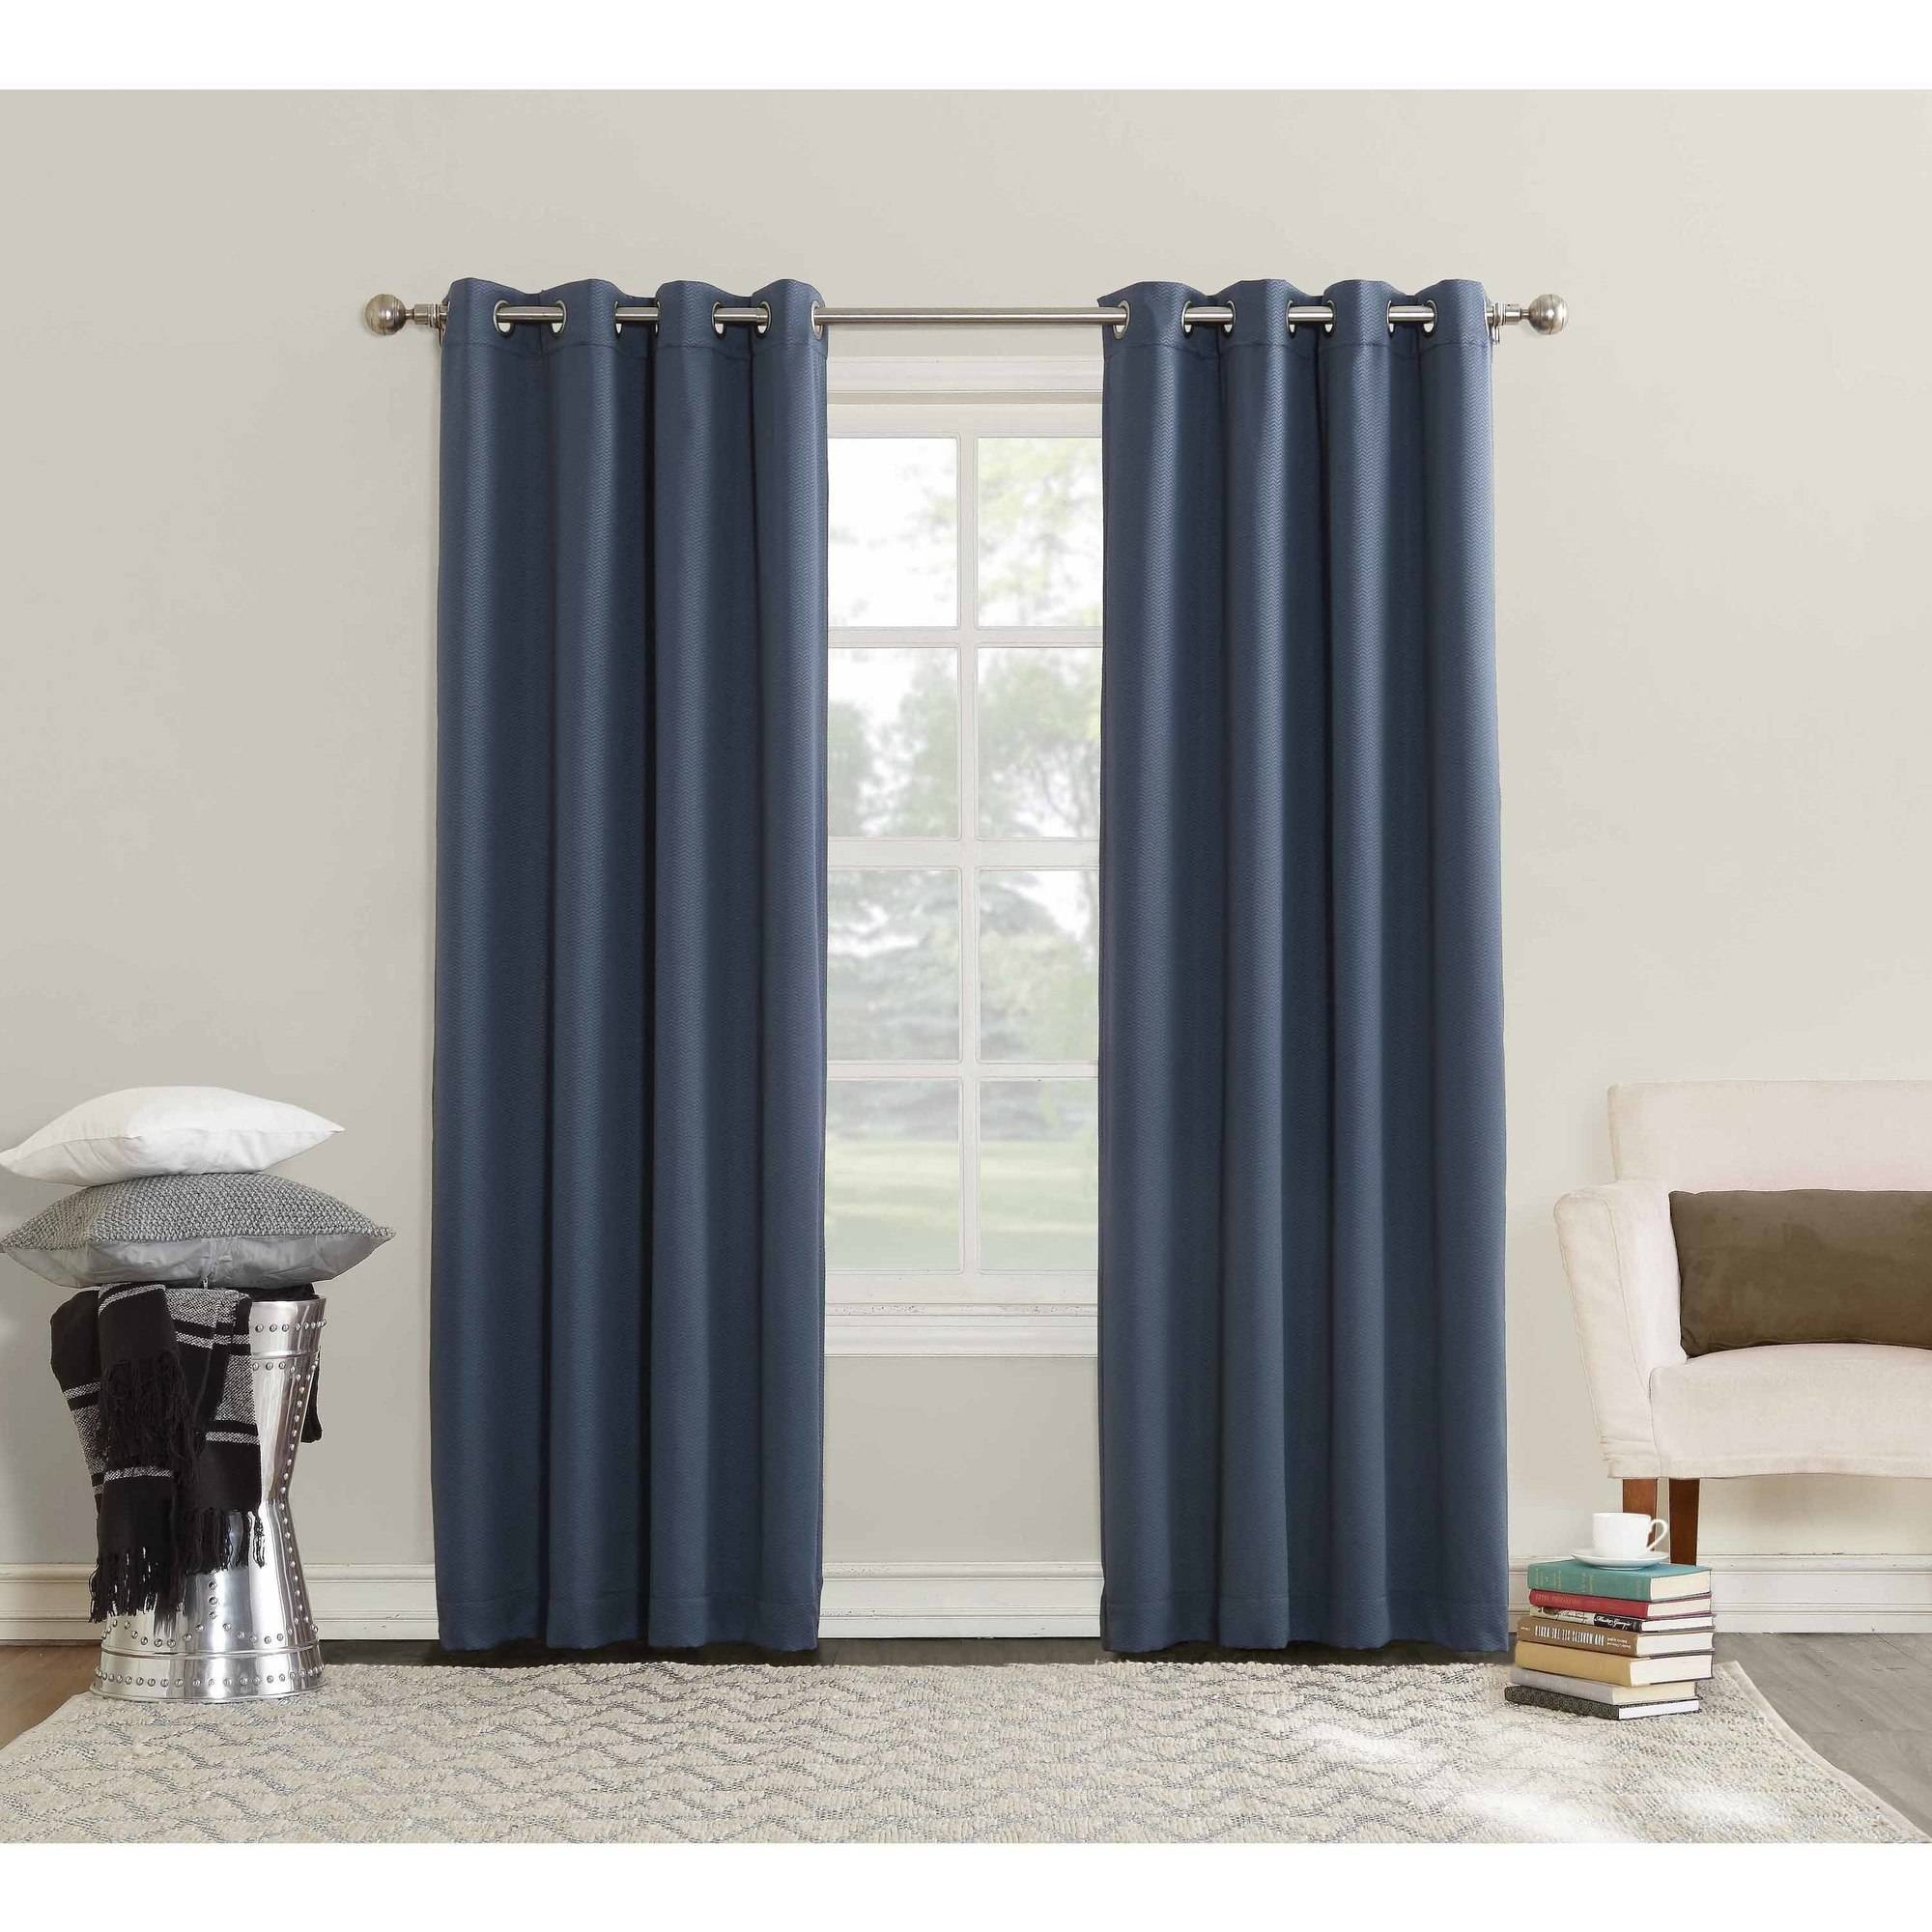 Sun Zero Ella Room Darkening Triple Lined Grommet Curtain Panel Regarding Ella Window Curtain Panels (View 19 of 20)